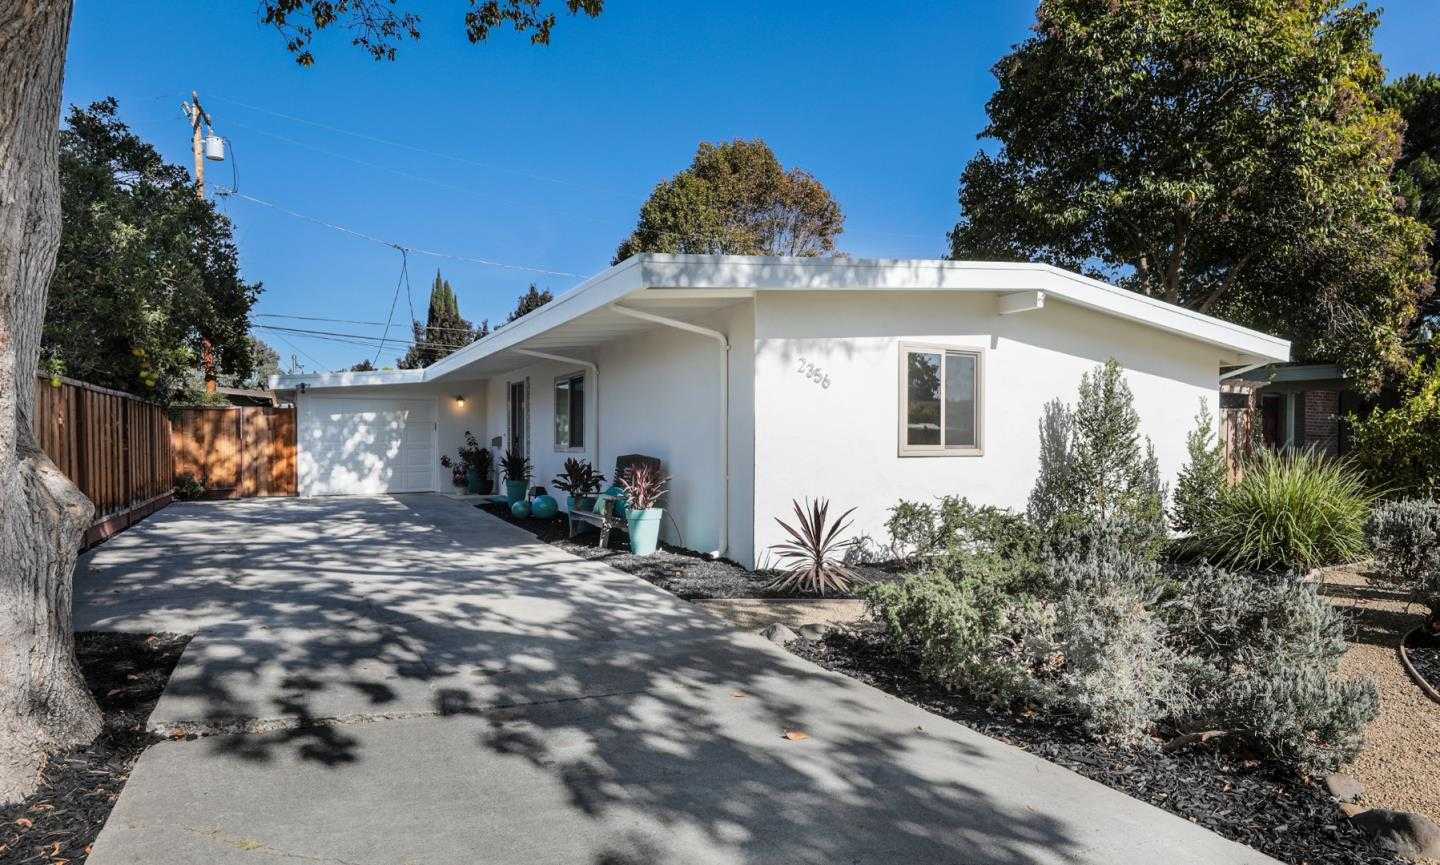 $1,800,000 - 3Br/2Ba -  for Sale in Mountain View